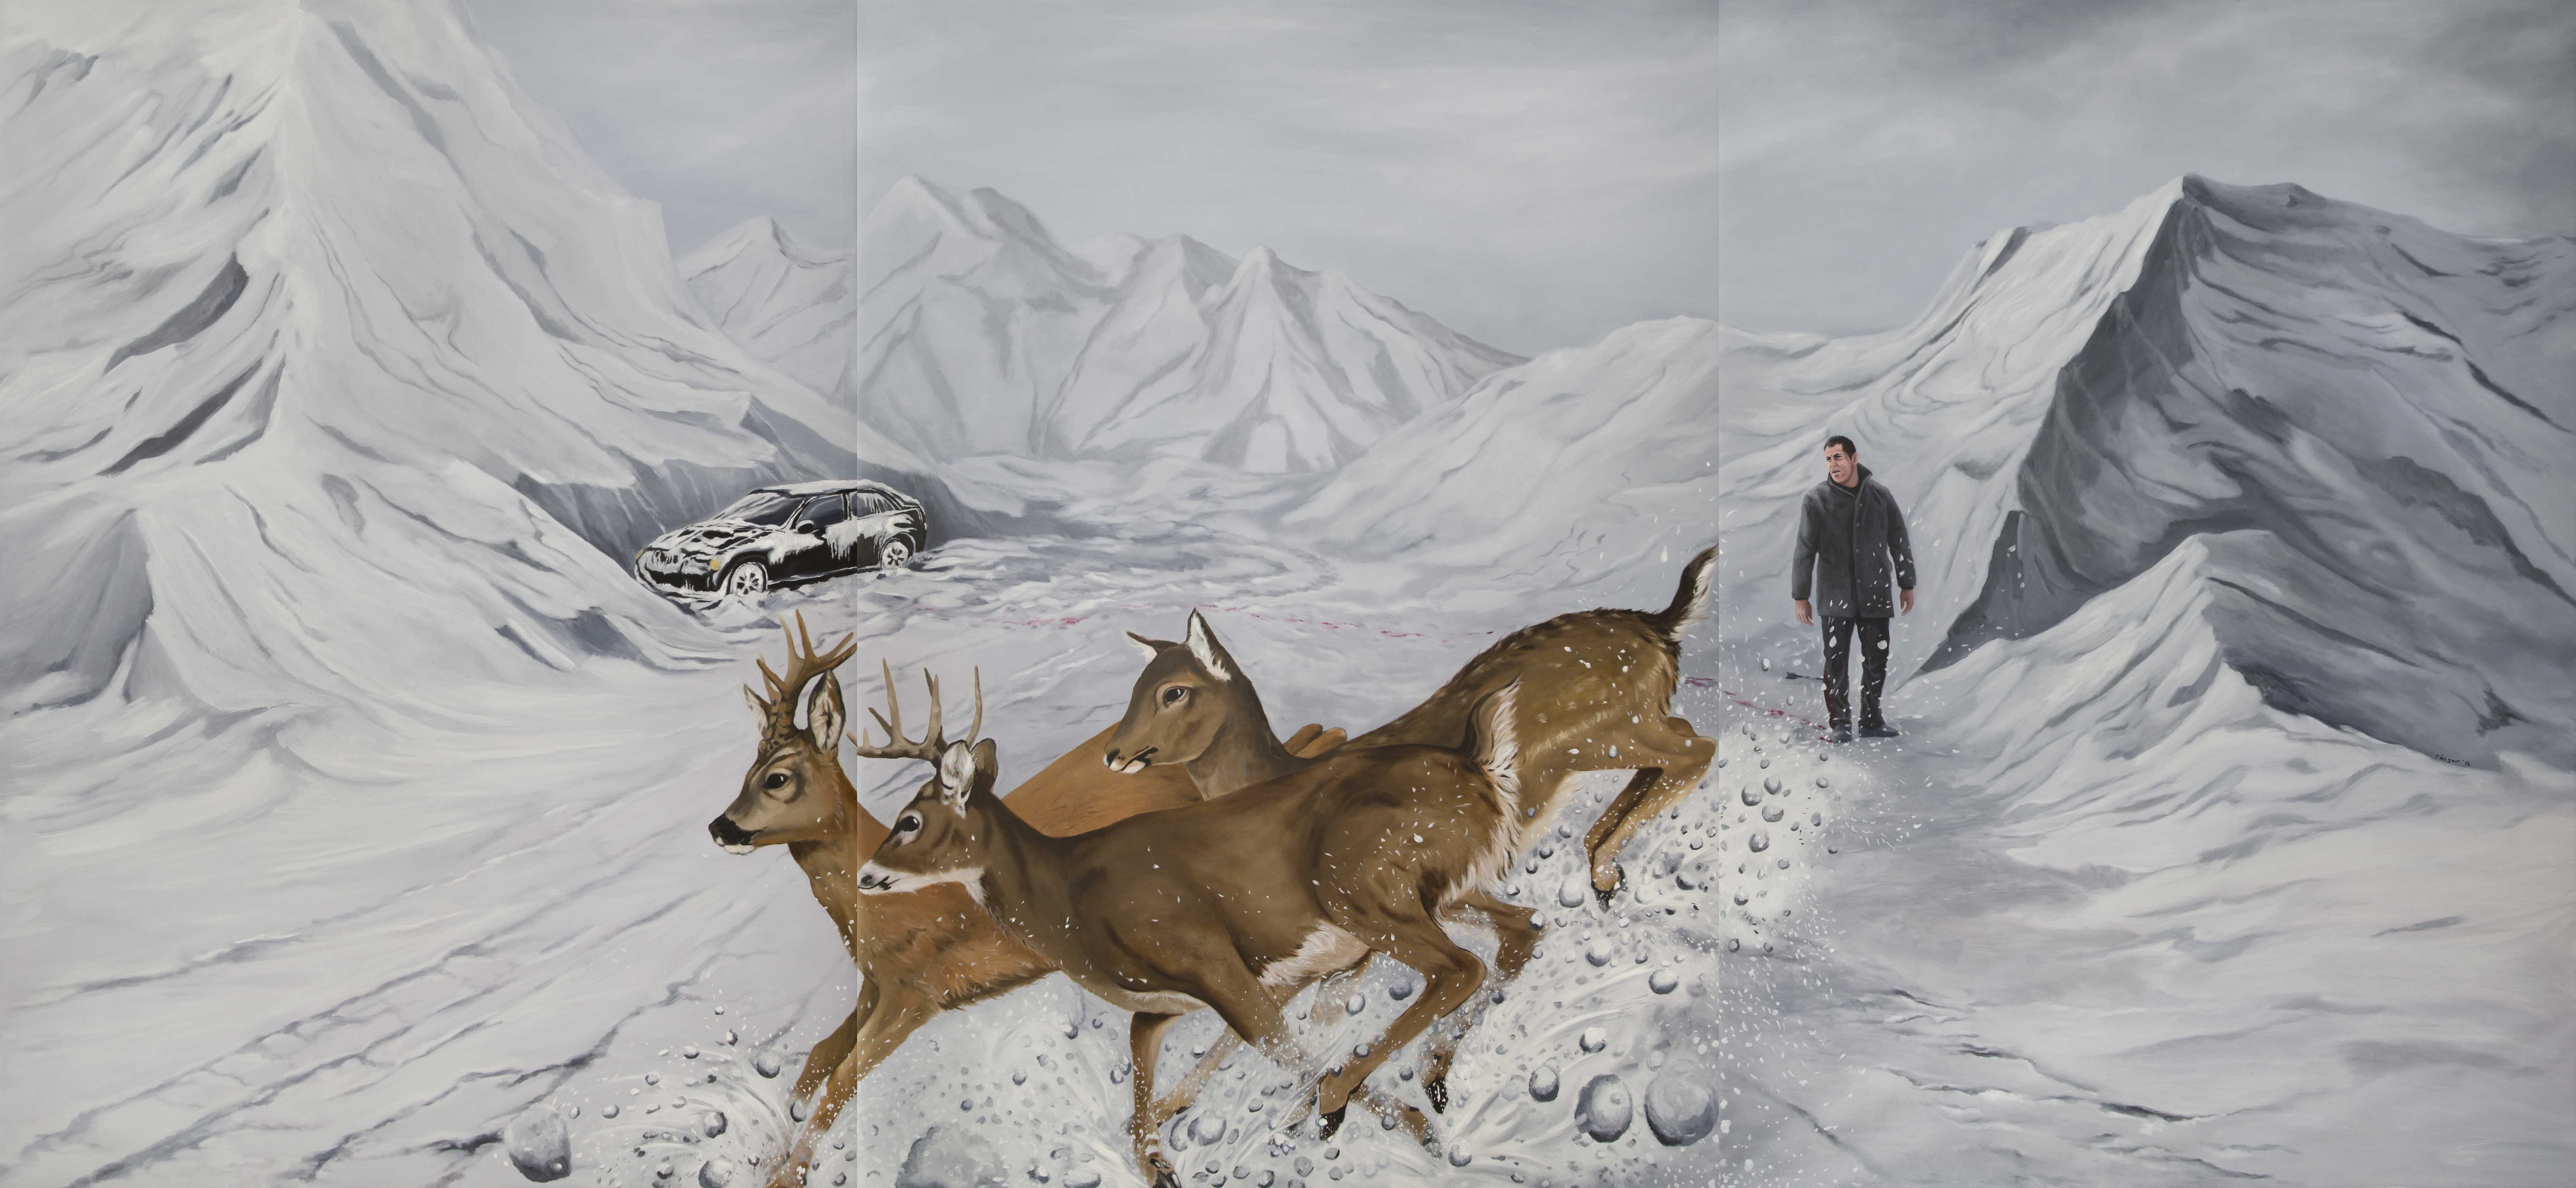 İsimsiz- Untitled, 2017, Tuval Üzerine Yağlıboya- Oil on canvas, 180×390 cm.